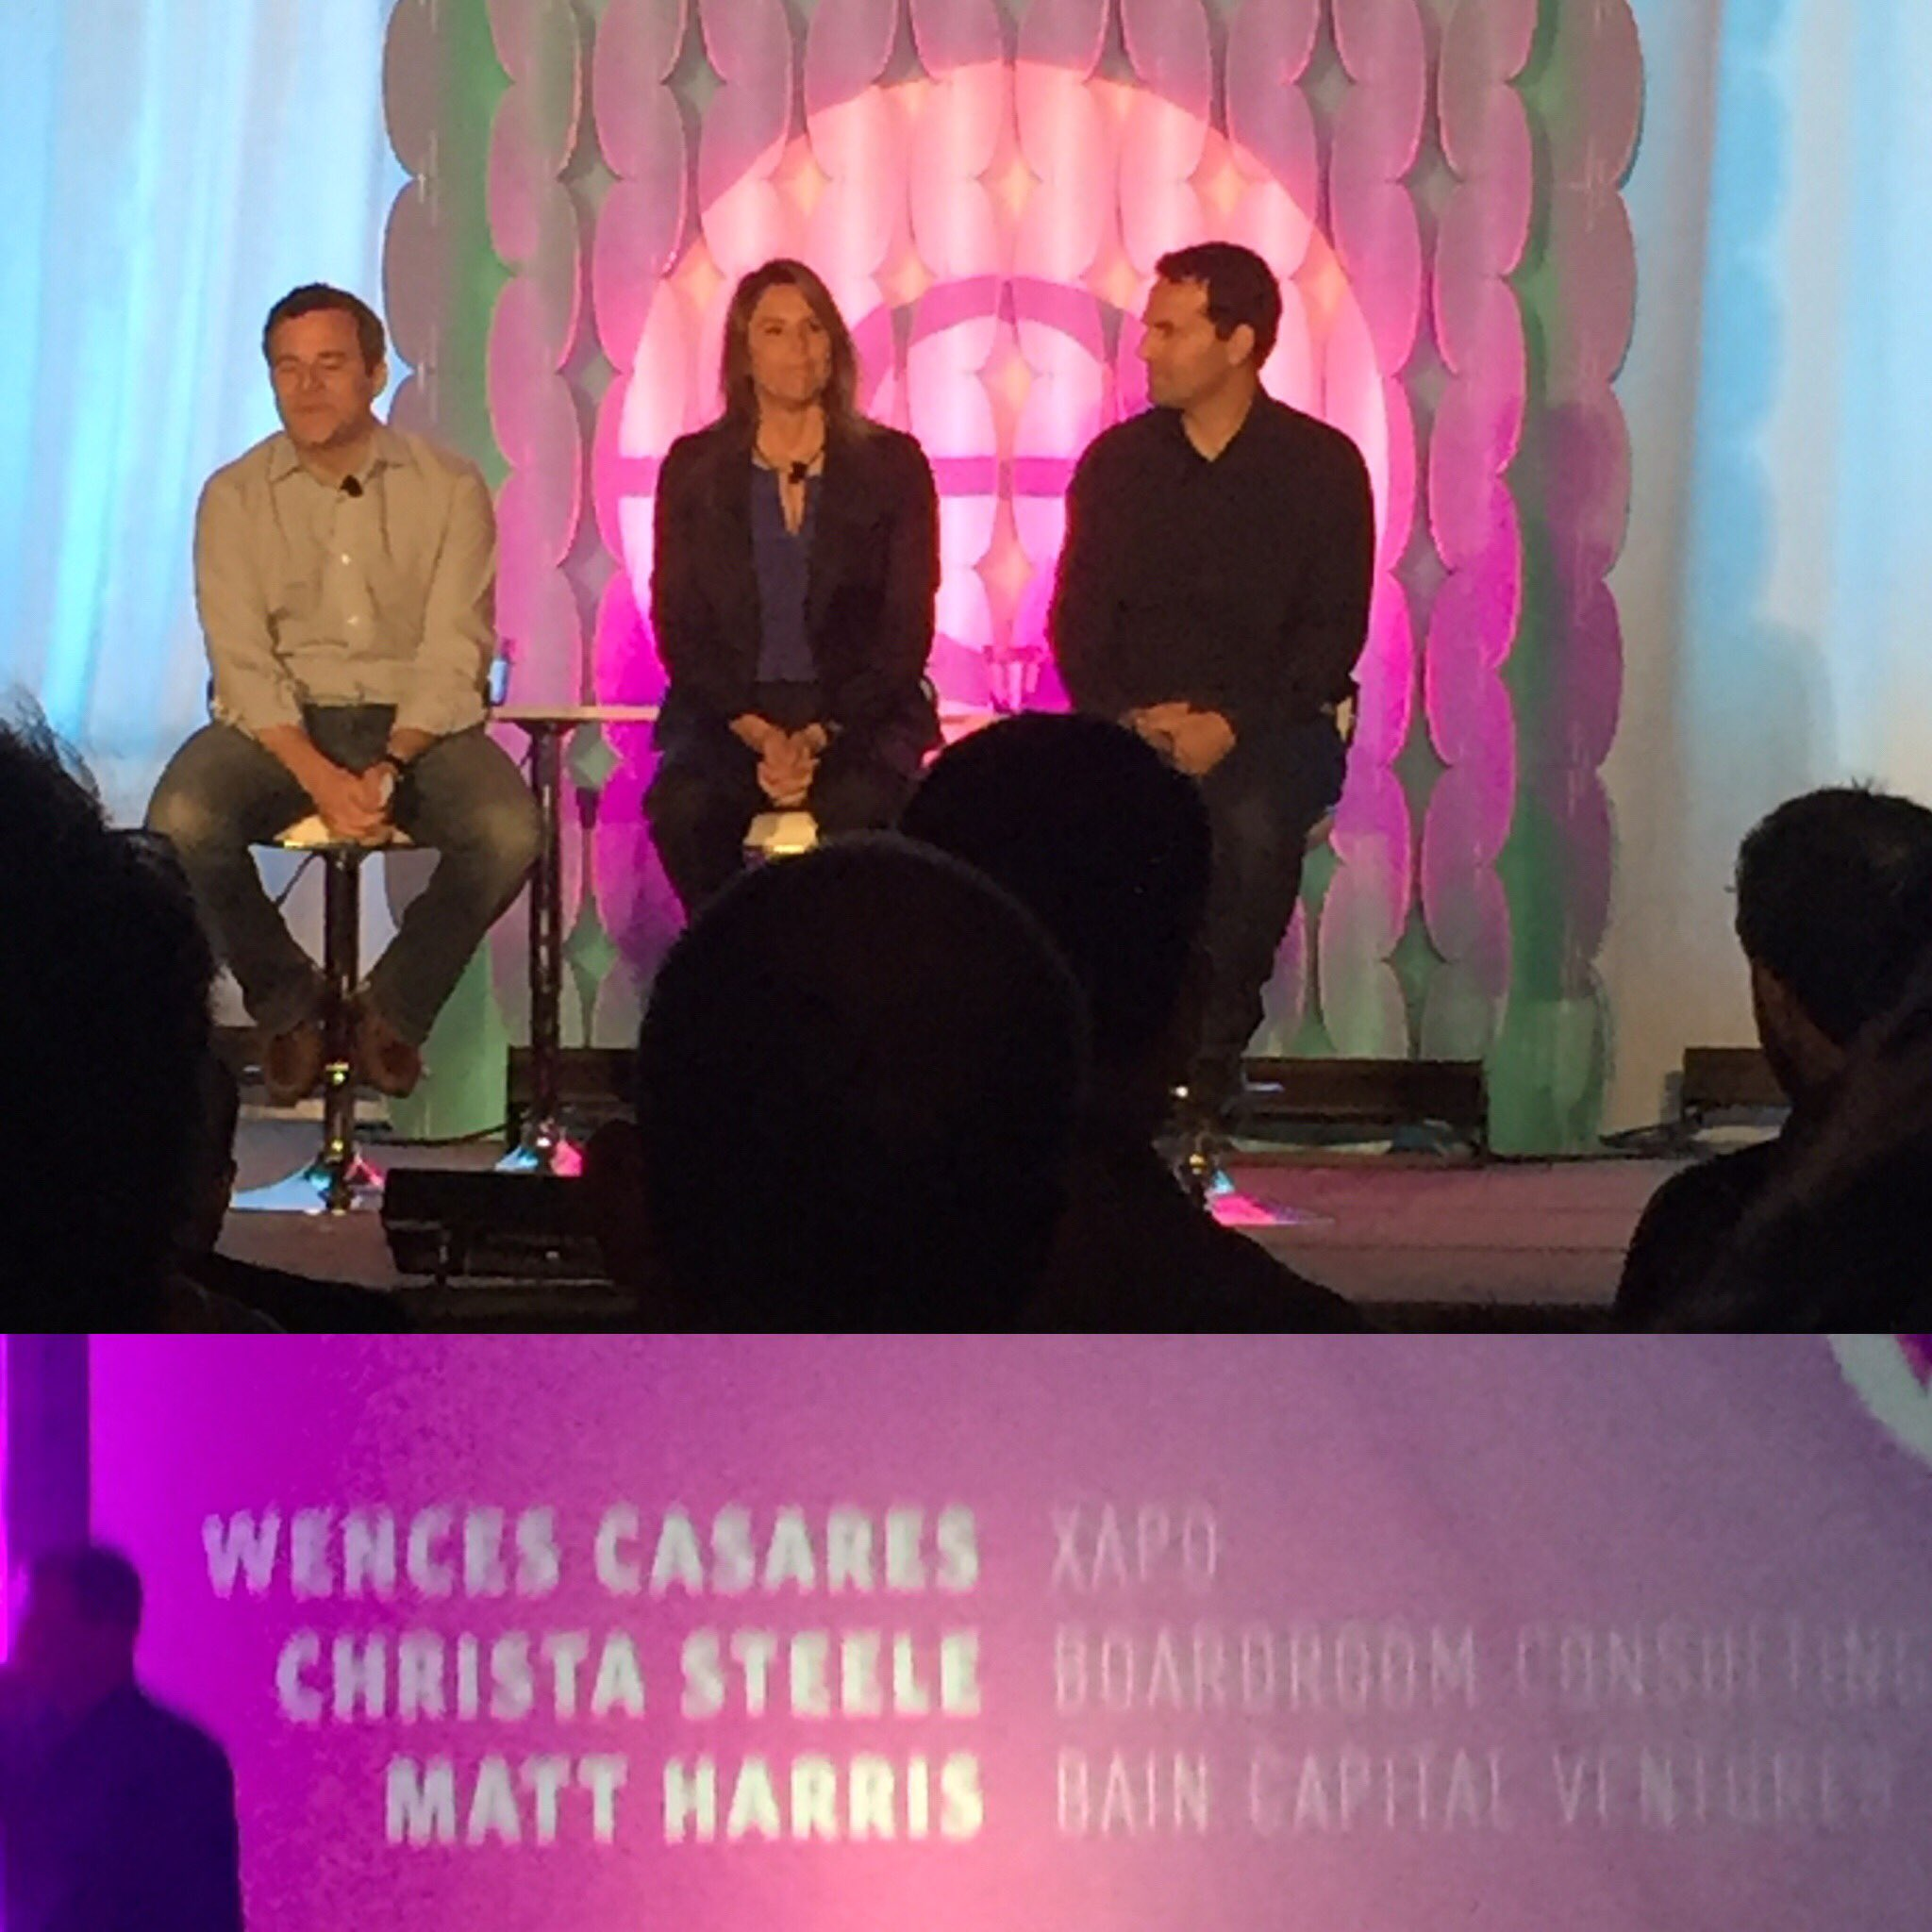 Endeavor Entrepreneur @wences, with @mattcharris and Christa Steele discussing #Blockchain #Bitcoin #endeavorretreat https://t.co/4XmTLlDgEW